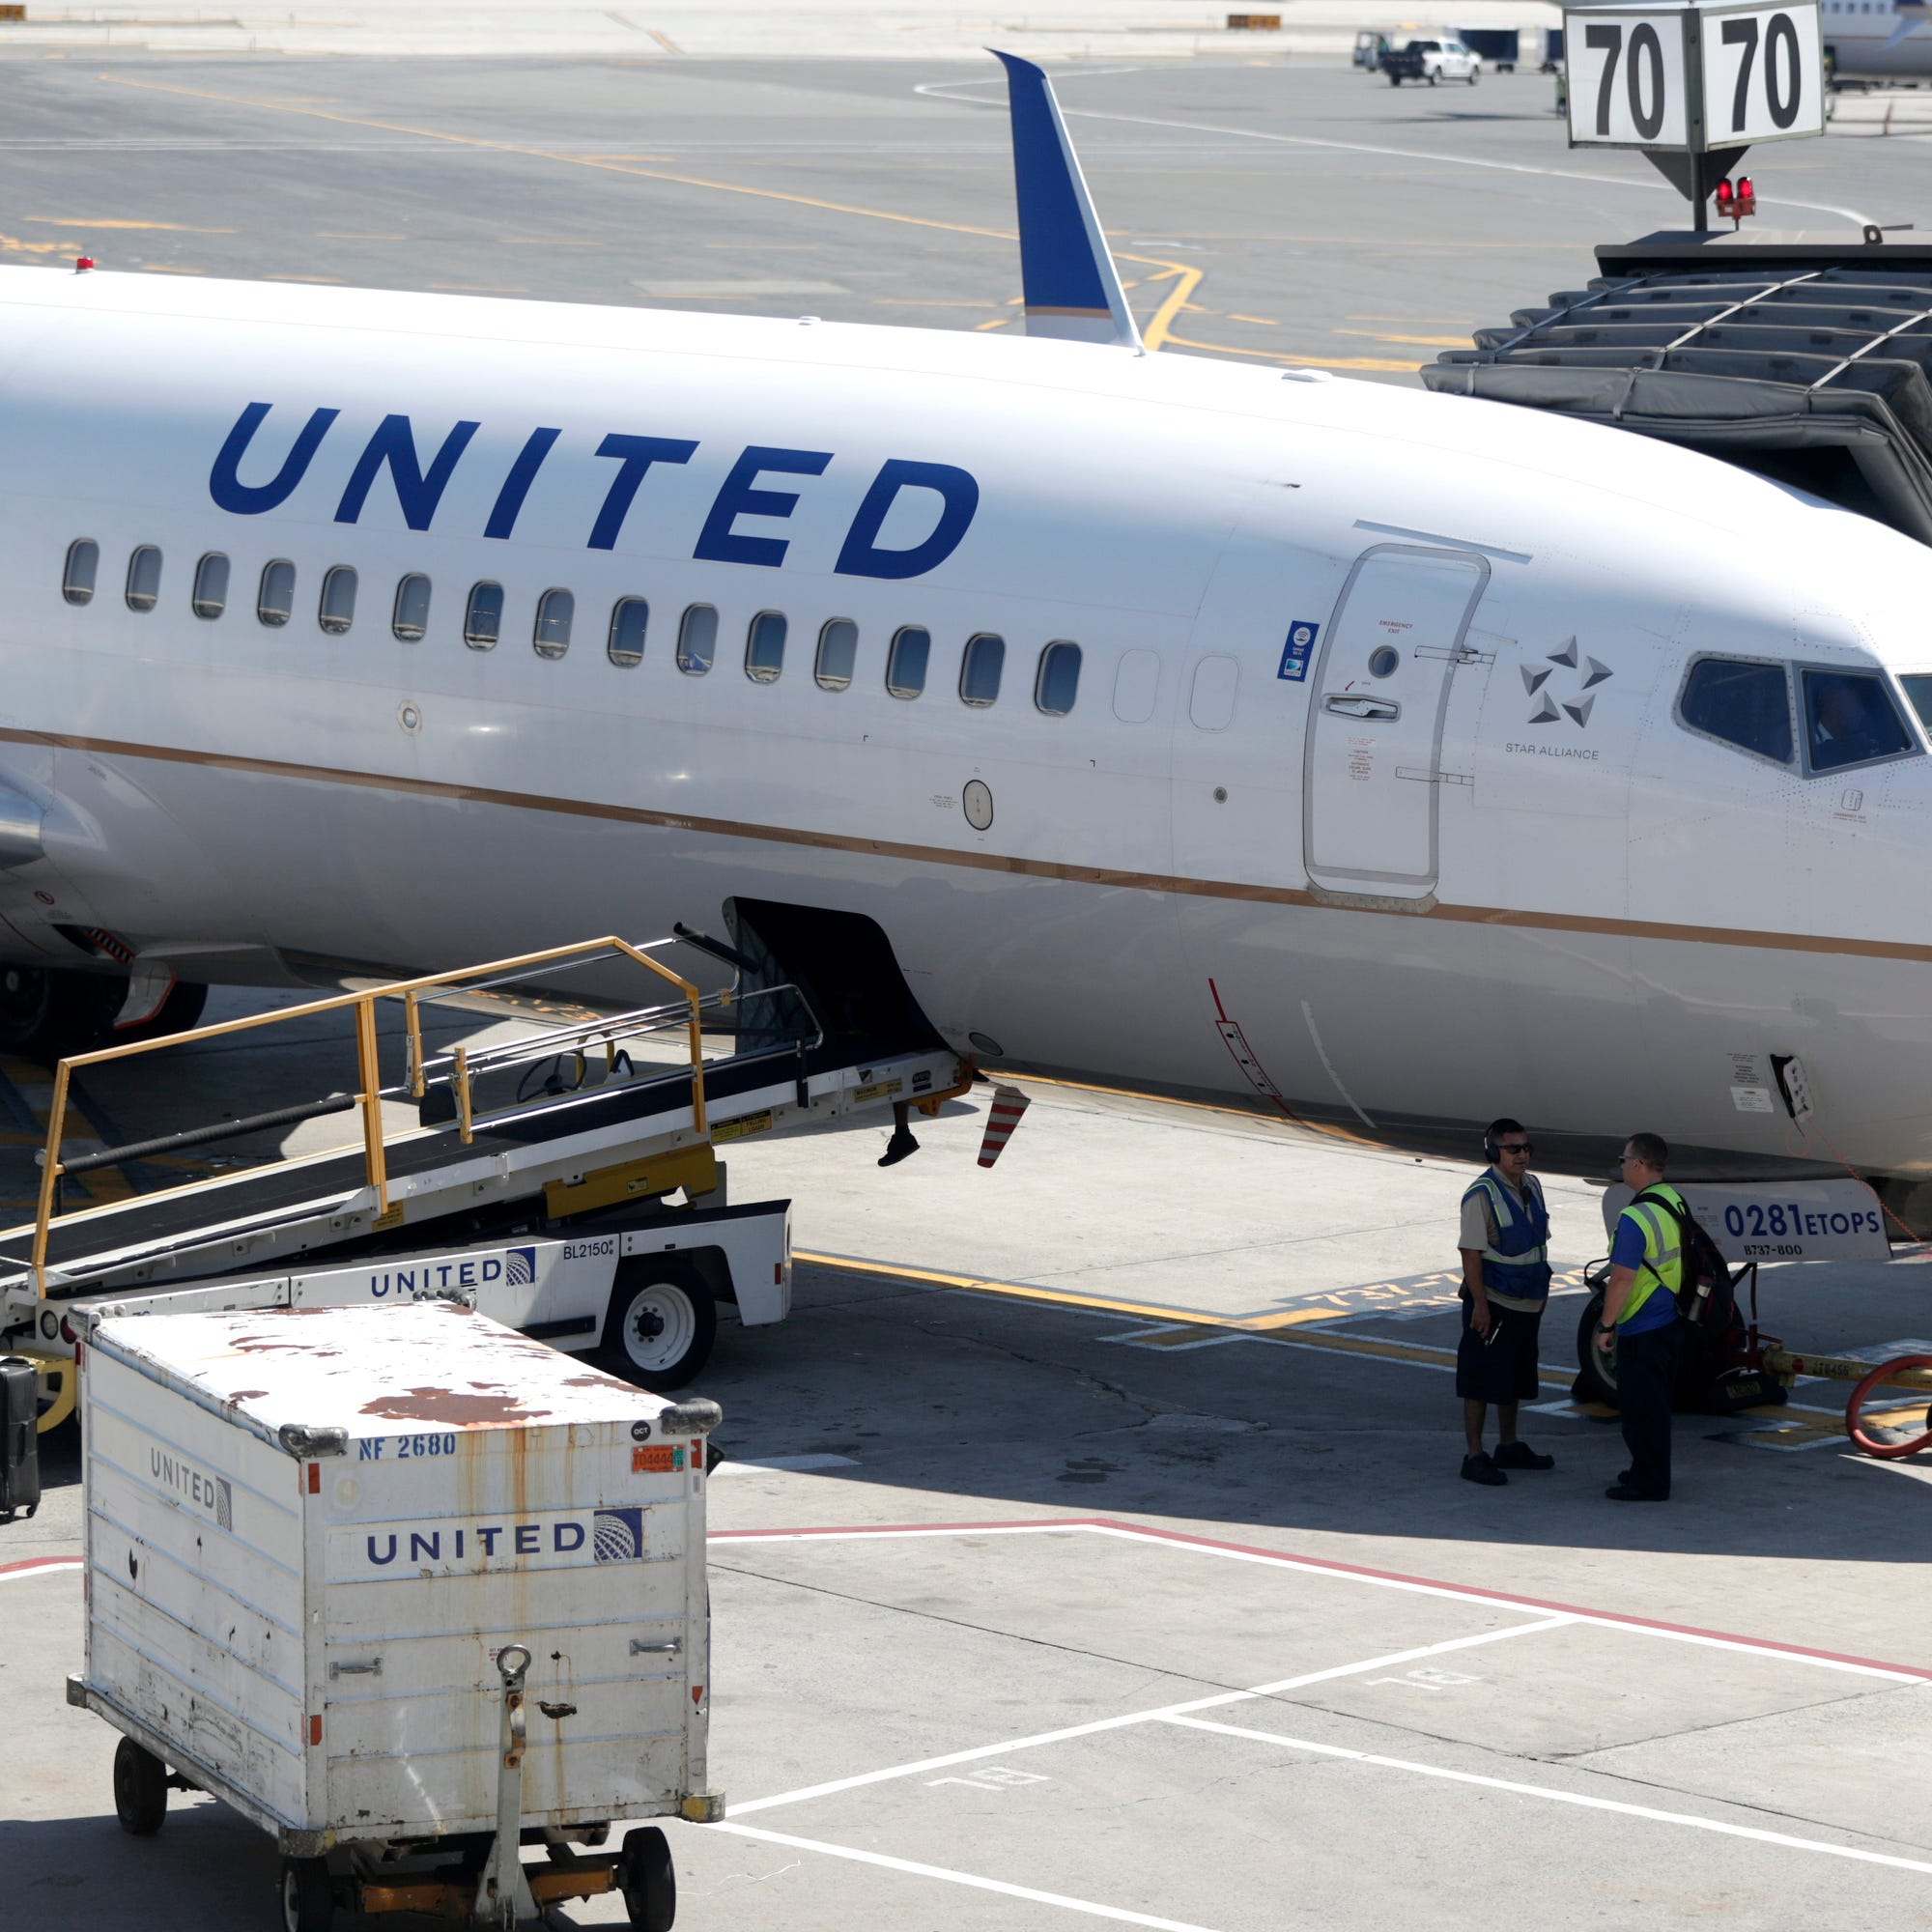 A United aircraft.